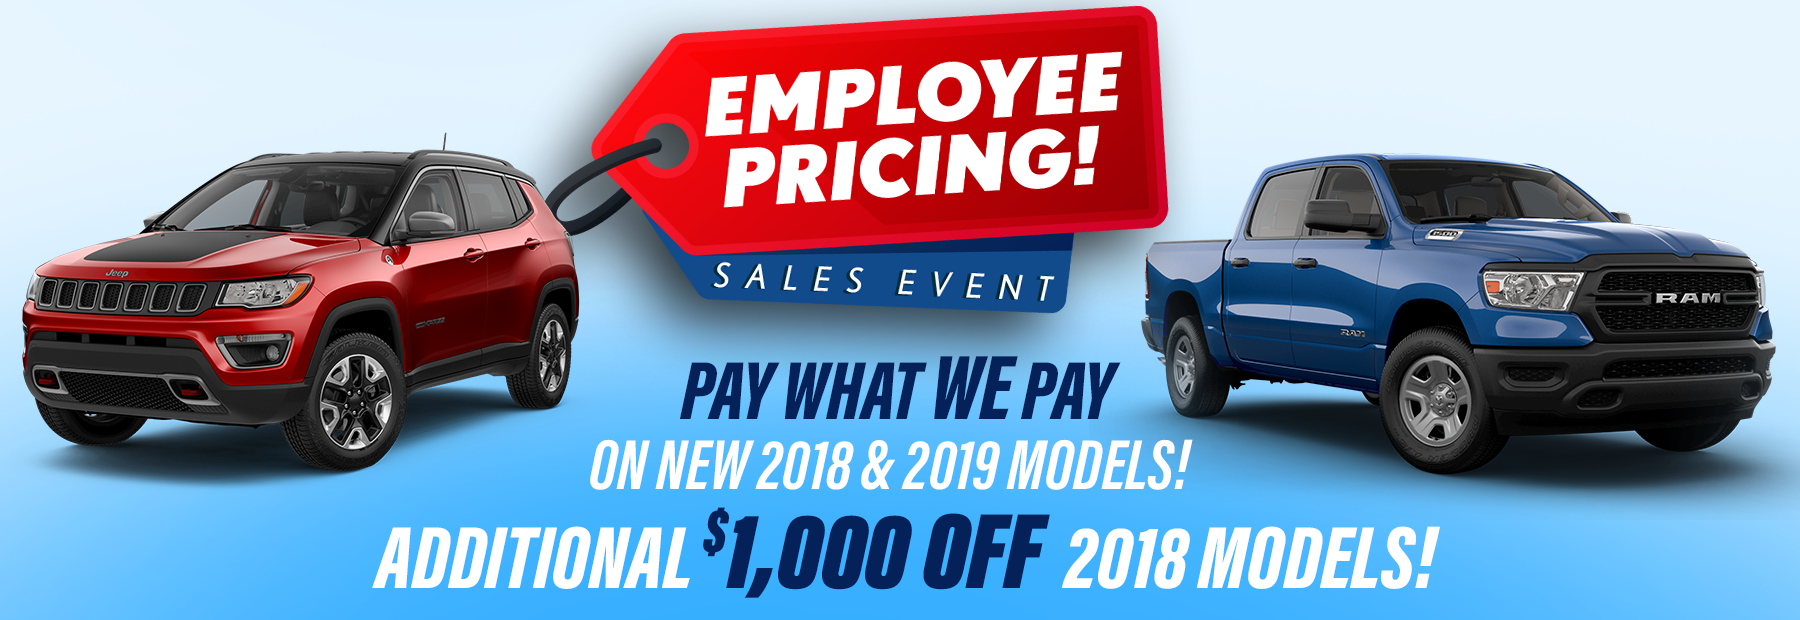 employee-pricing-dayton-ohio